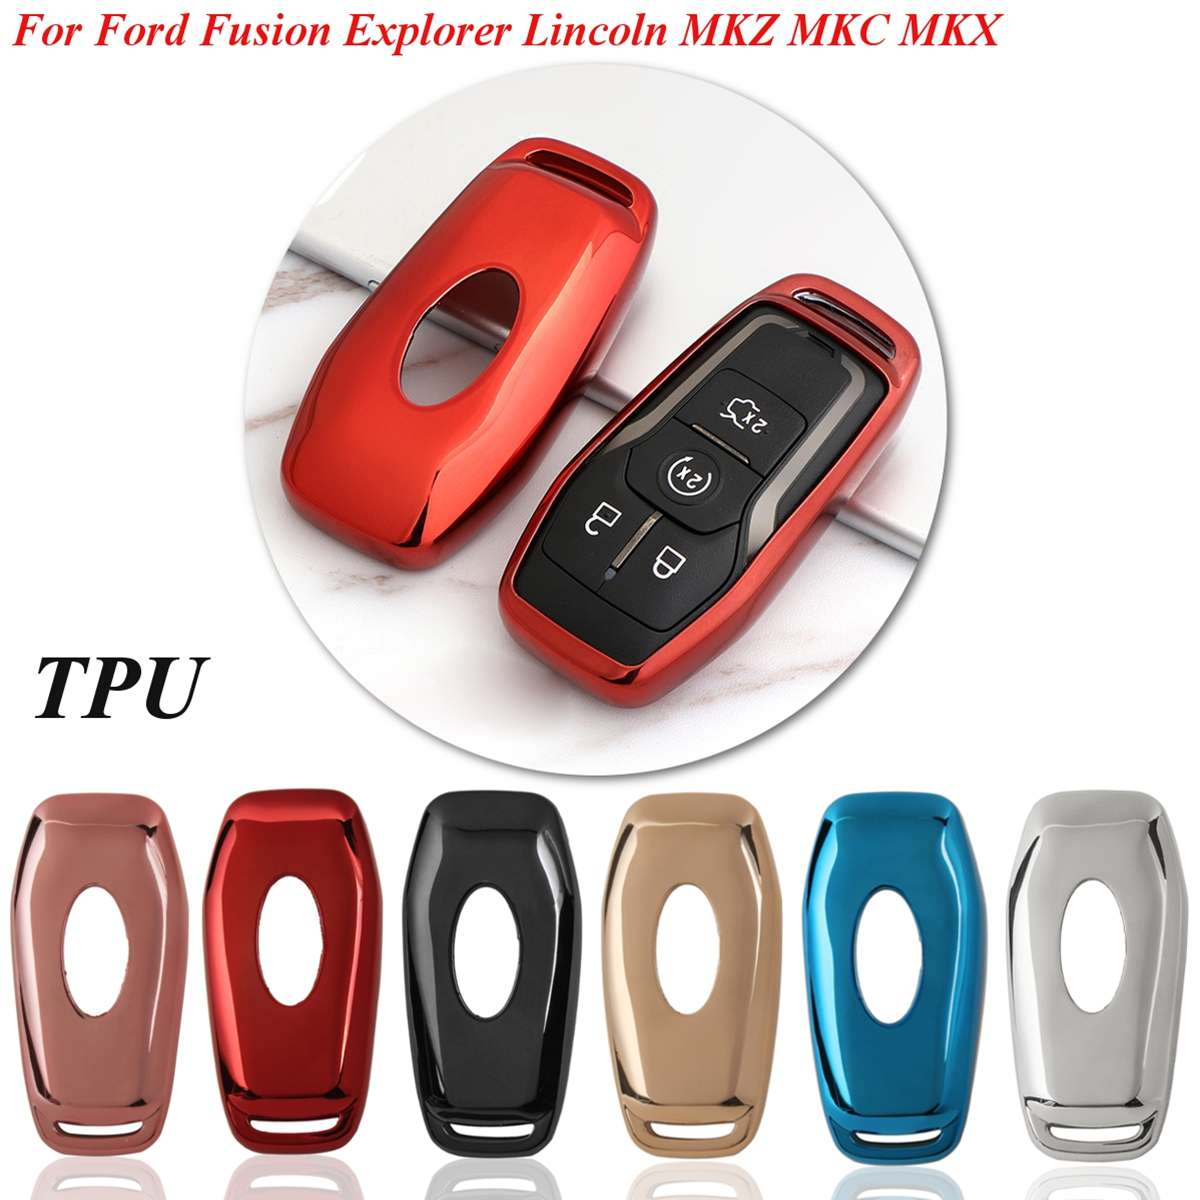 TPU Remote Key Case Cover Shell For Ford Fusion/Mondeo/Mustang F150 Edge Explorer For Lincoln MKZ MKC MKX 2013 - 2018  Styling